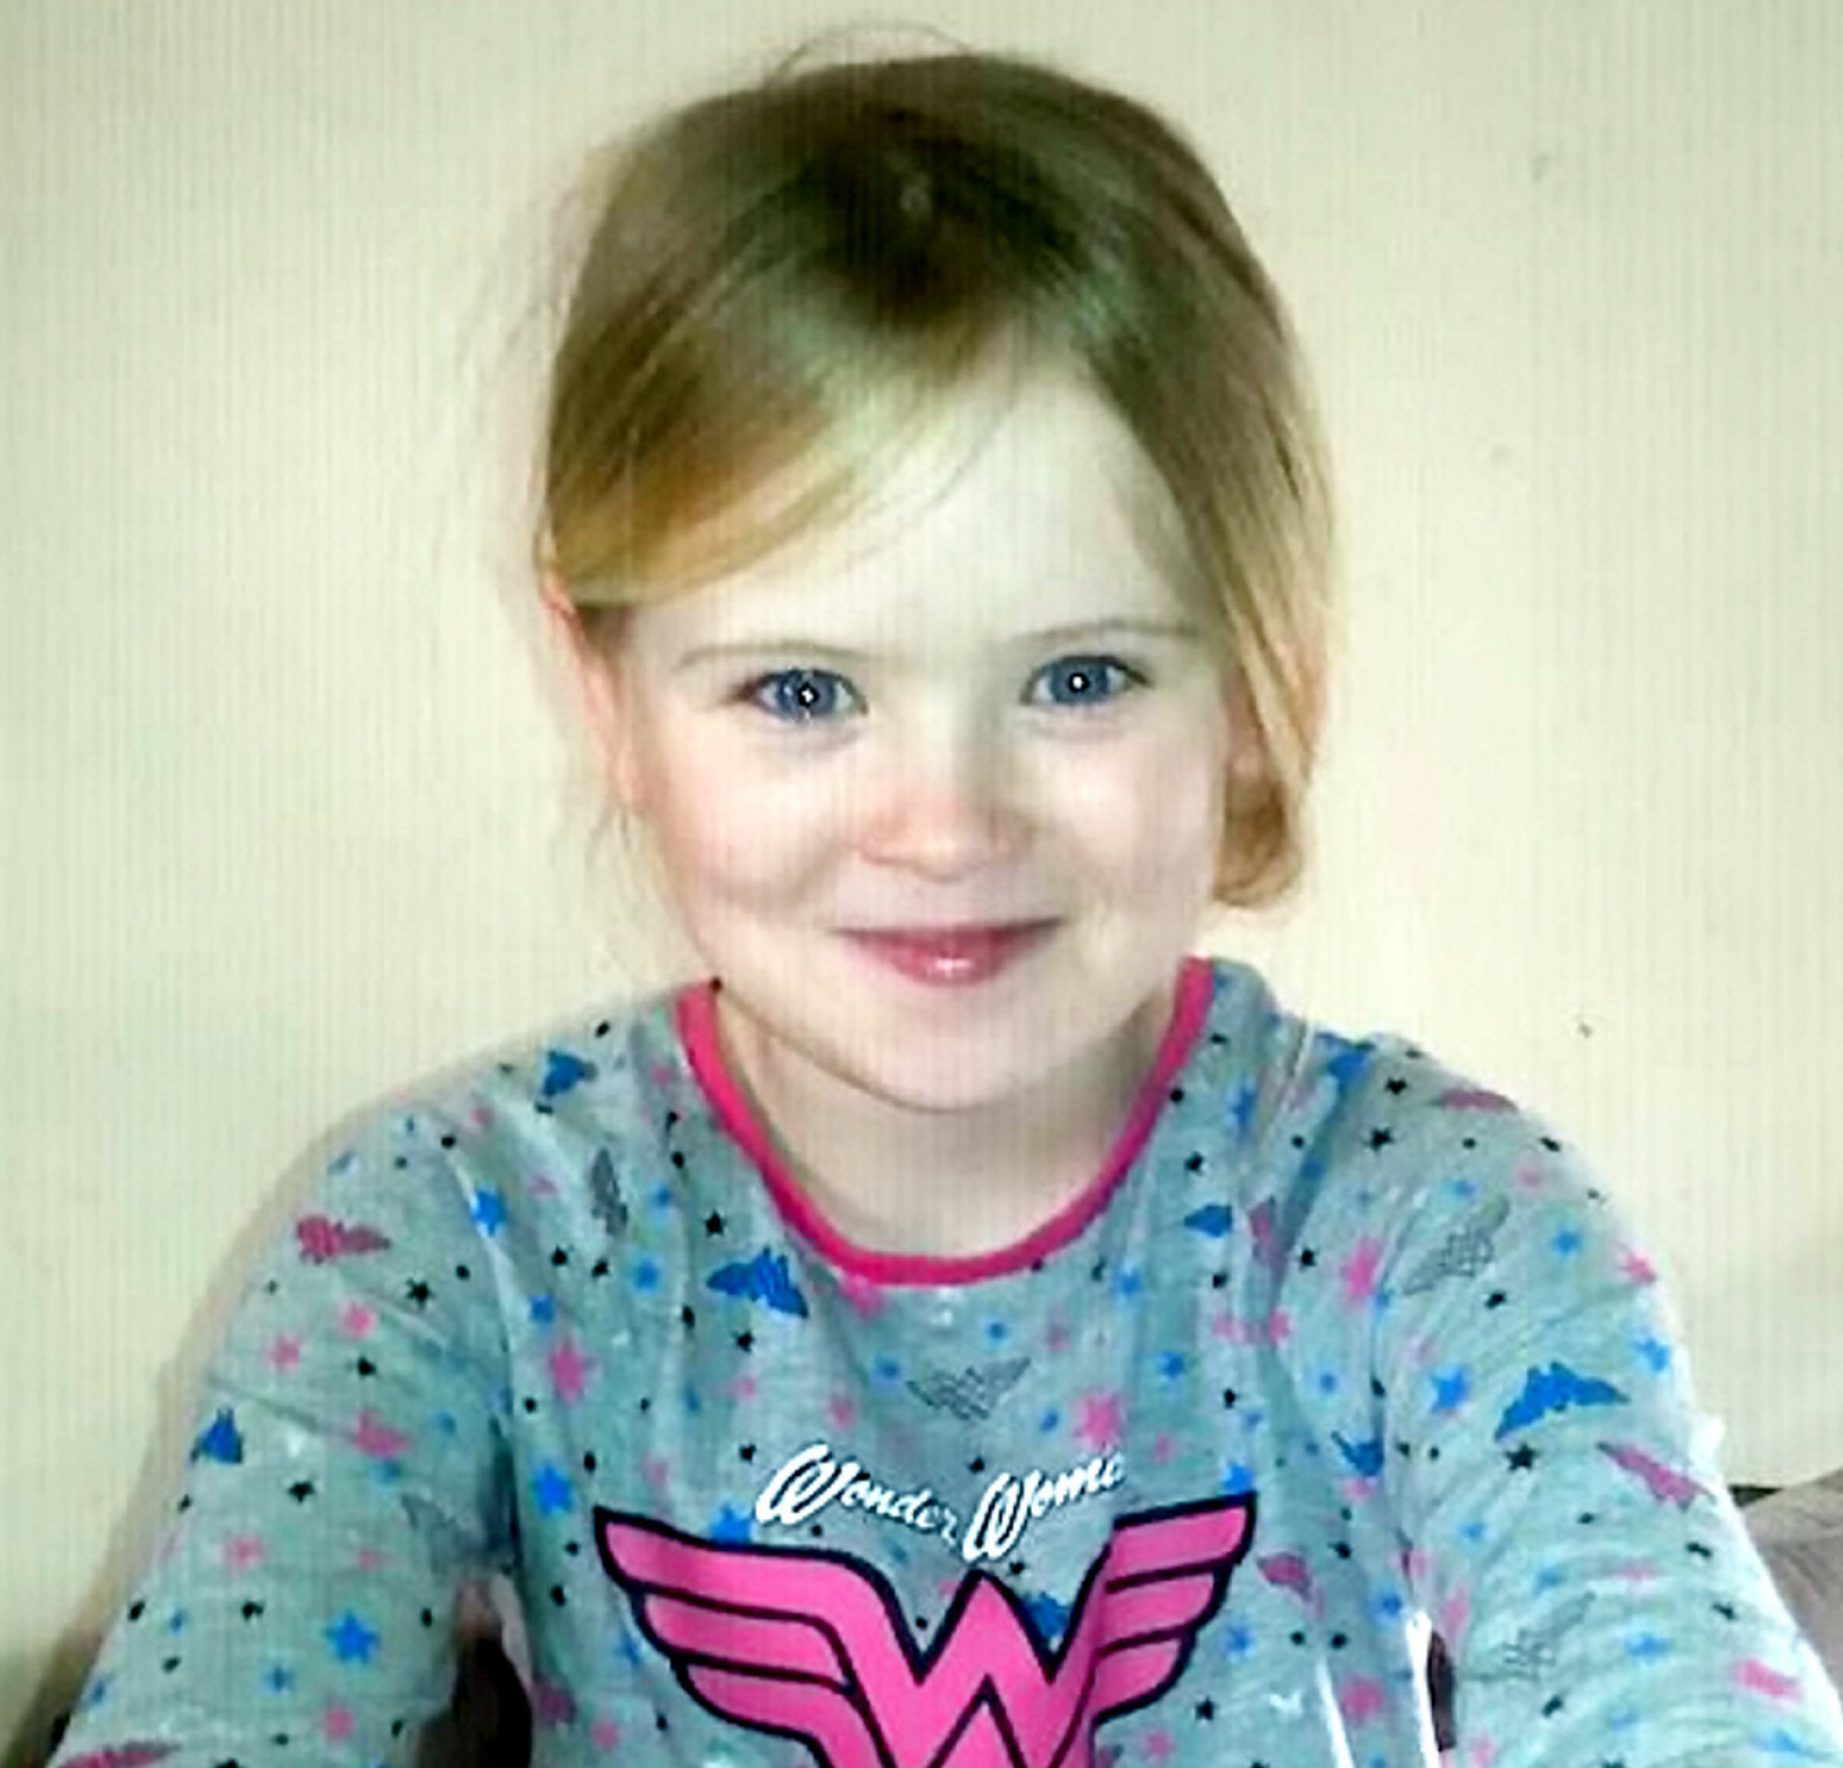 FILE PICTURE - Mylee Billingham (8). See NTI story NTIMYLEE. William Billingham, 54, was arrested in January after Mylee Billingham was found with knife wounds at his bungalow in Brownhills, near Walsall. The schoolgirl died from her injuries in hospital after emergency crews were called to the scene at around 9.15pm on January 20. Her father was taken to Birmingham?s Queen Elizabeth Hospital for surgery to injuries caused on the same evening. Billingham pleaded not guilty to murder during a hearing at Wolverhampton Crown Court in June, and also denied a separate charge of making threats to kill her mother, Tracey Taundry. The 55-year-old, of Valley View, is due to appear for a jury trial at Birmingham Crown Court on Tuesday afternoon.